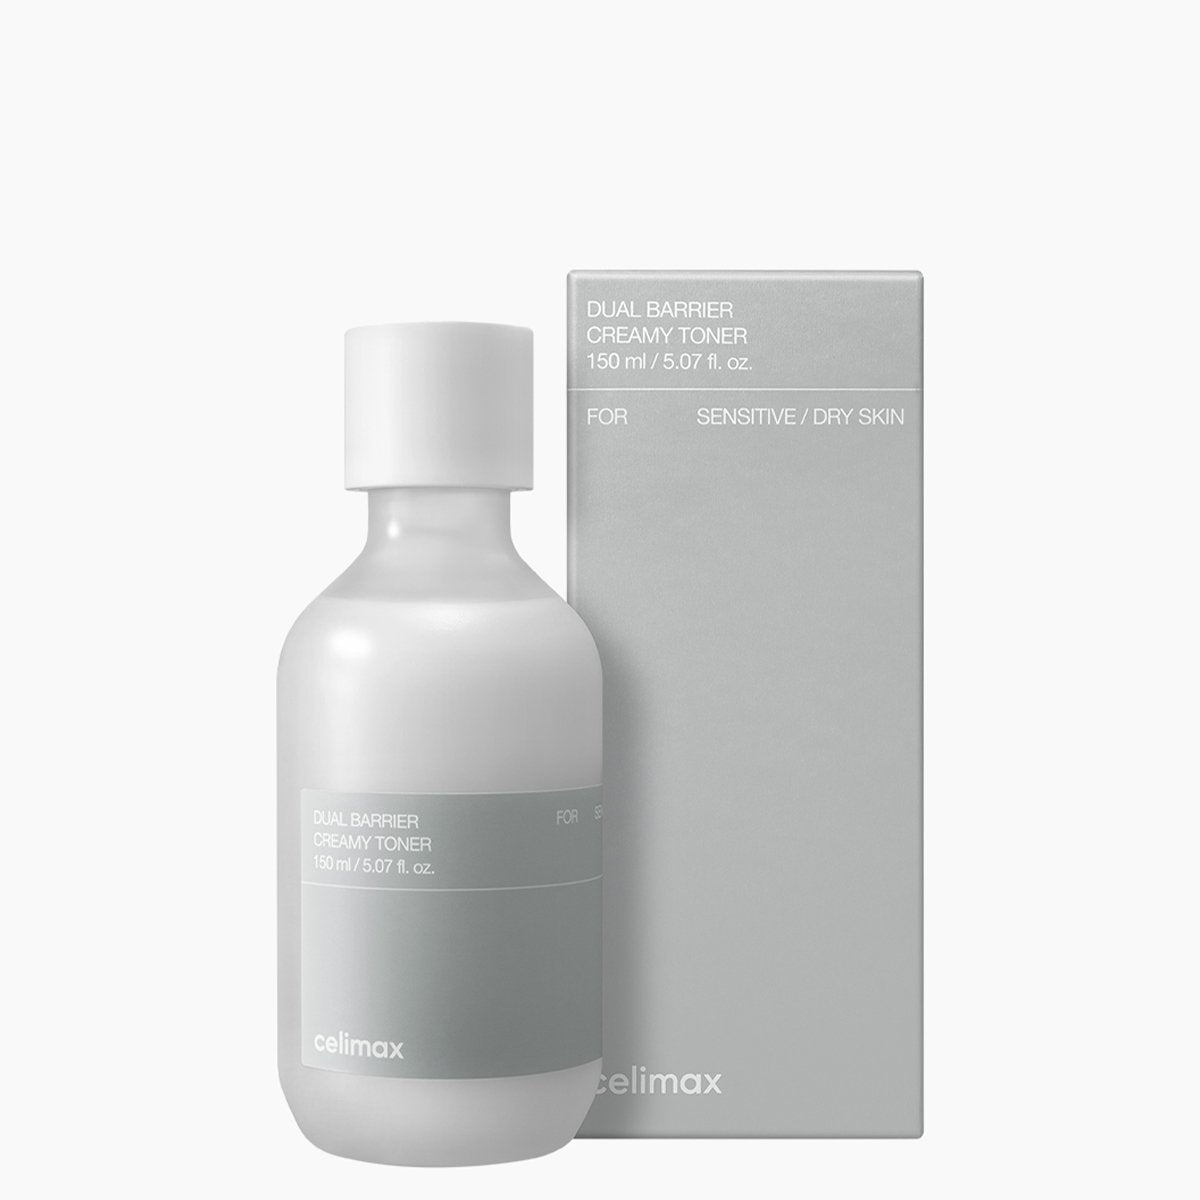 Dual Barrier Creamy Toner ( 150 mL )